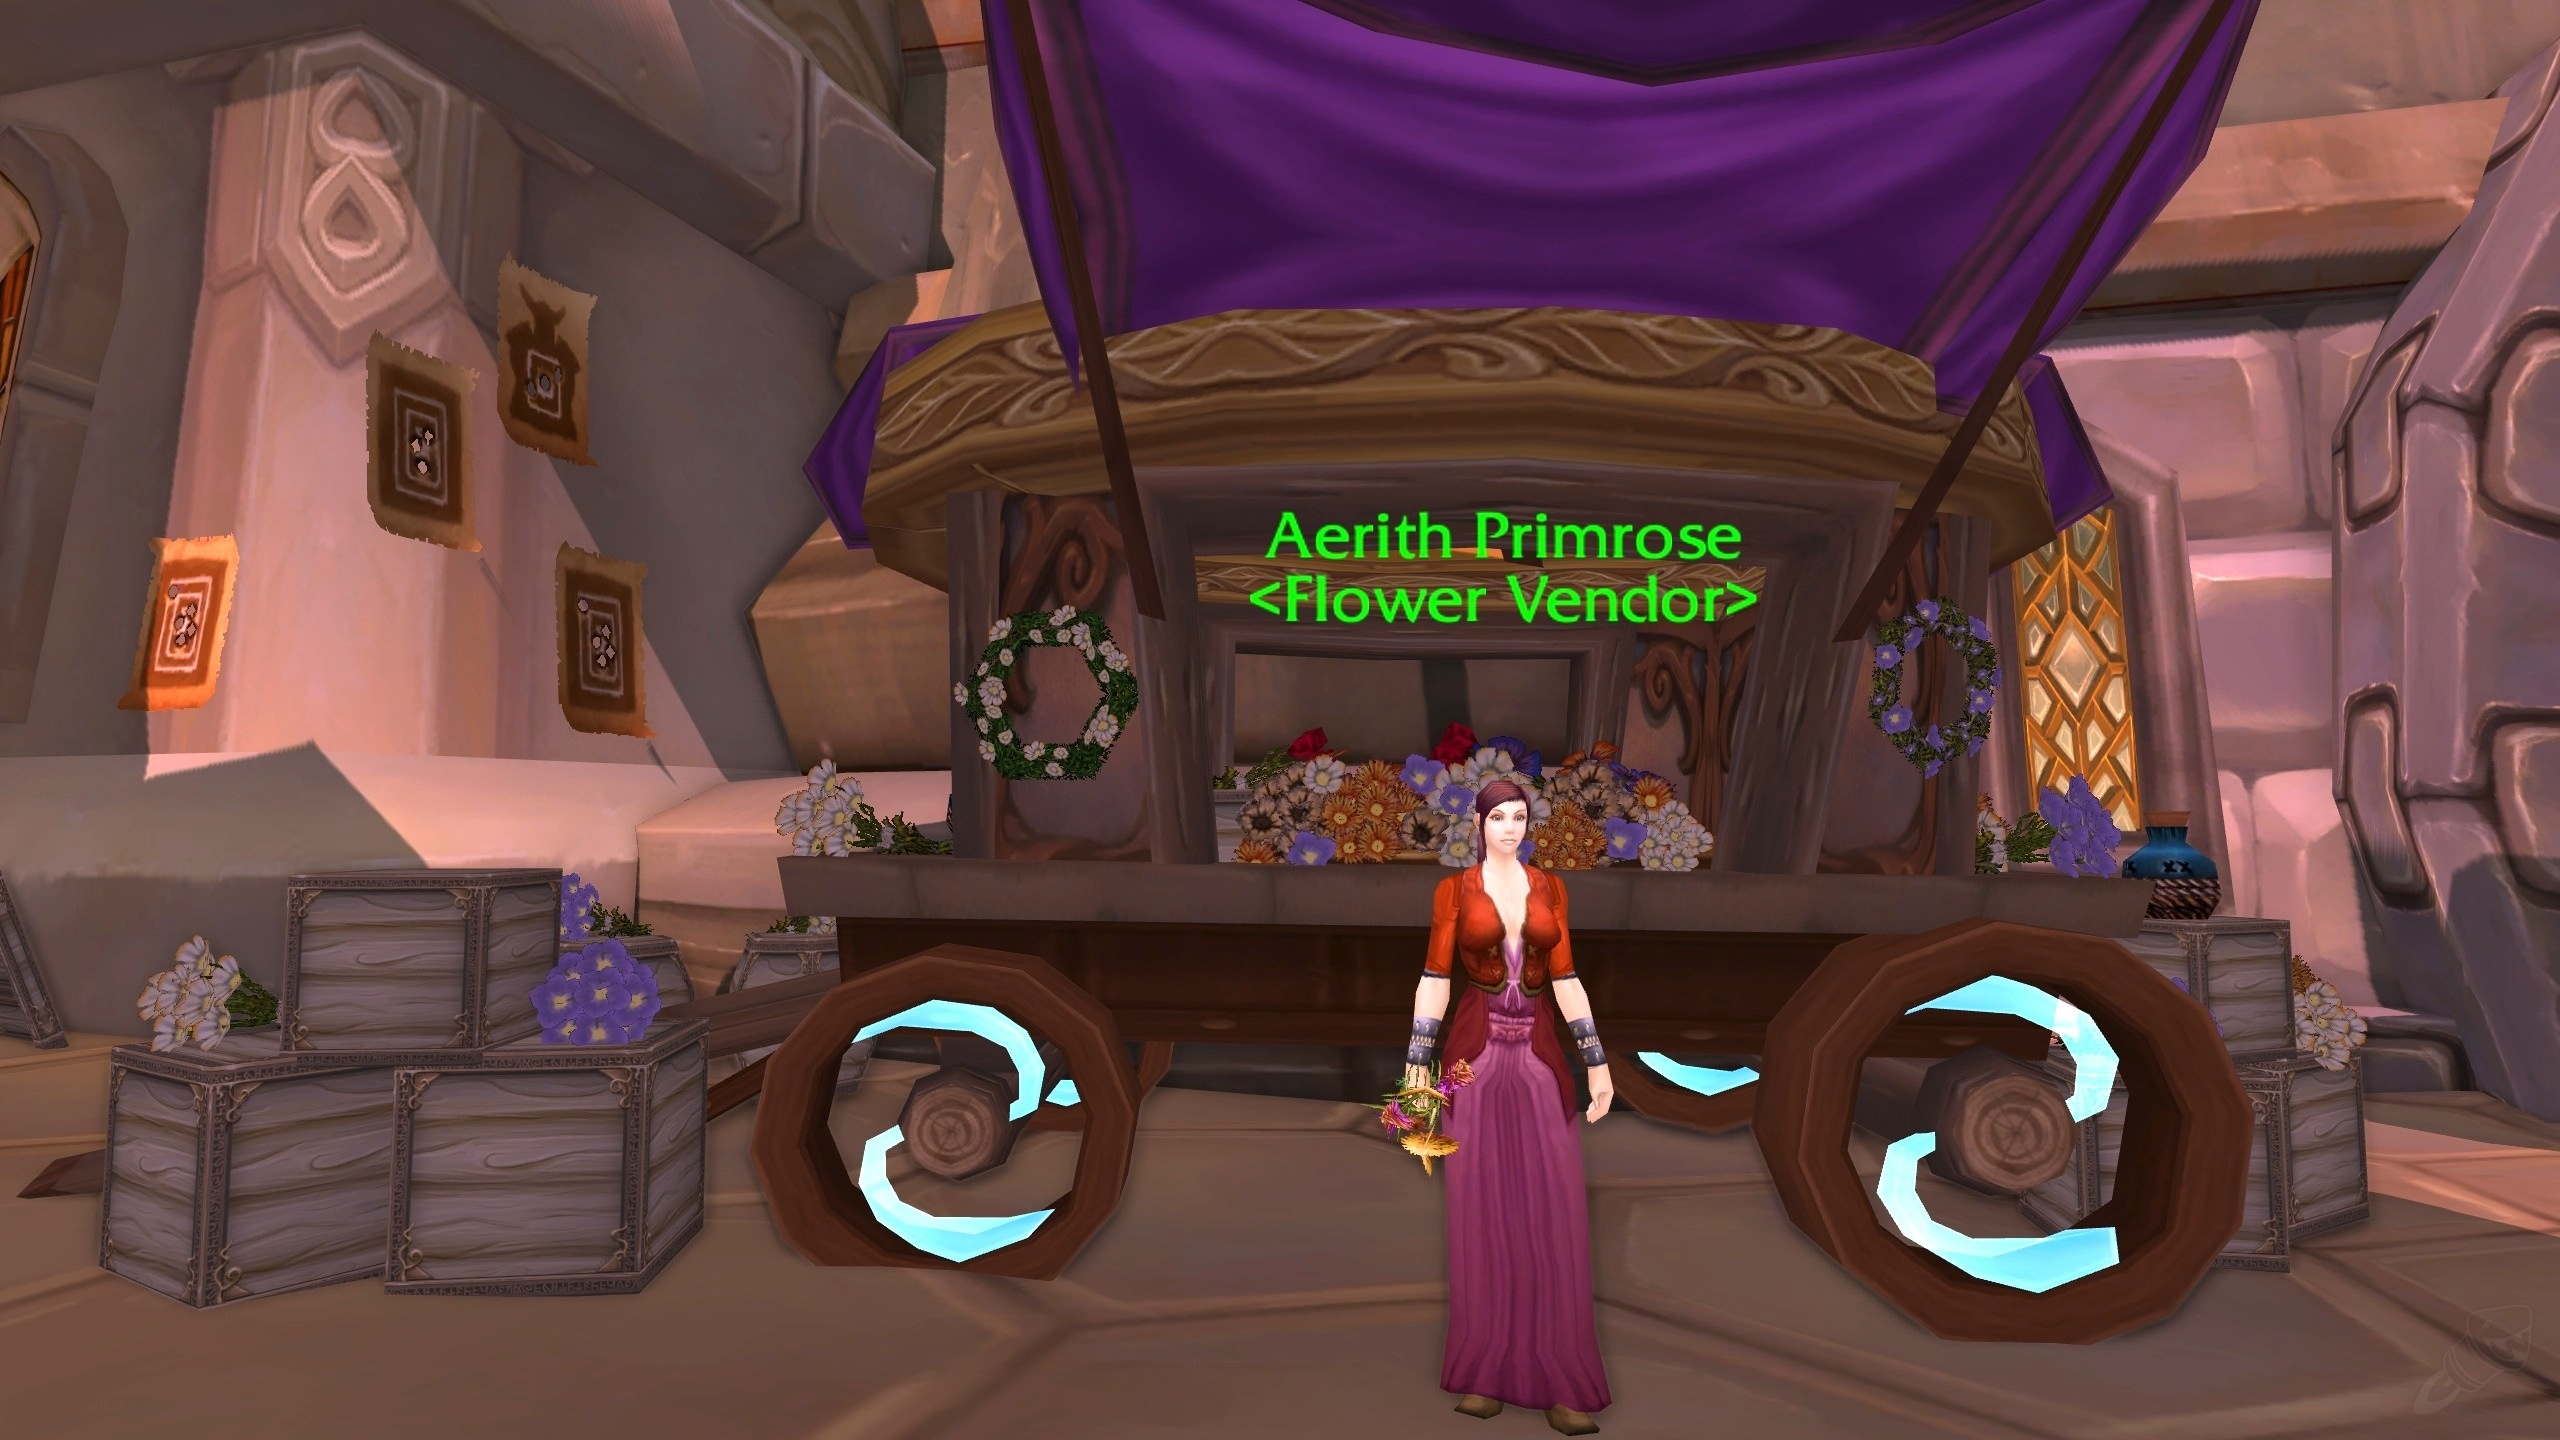 Pop Culture References in WoW: NPCs and Quests from Games